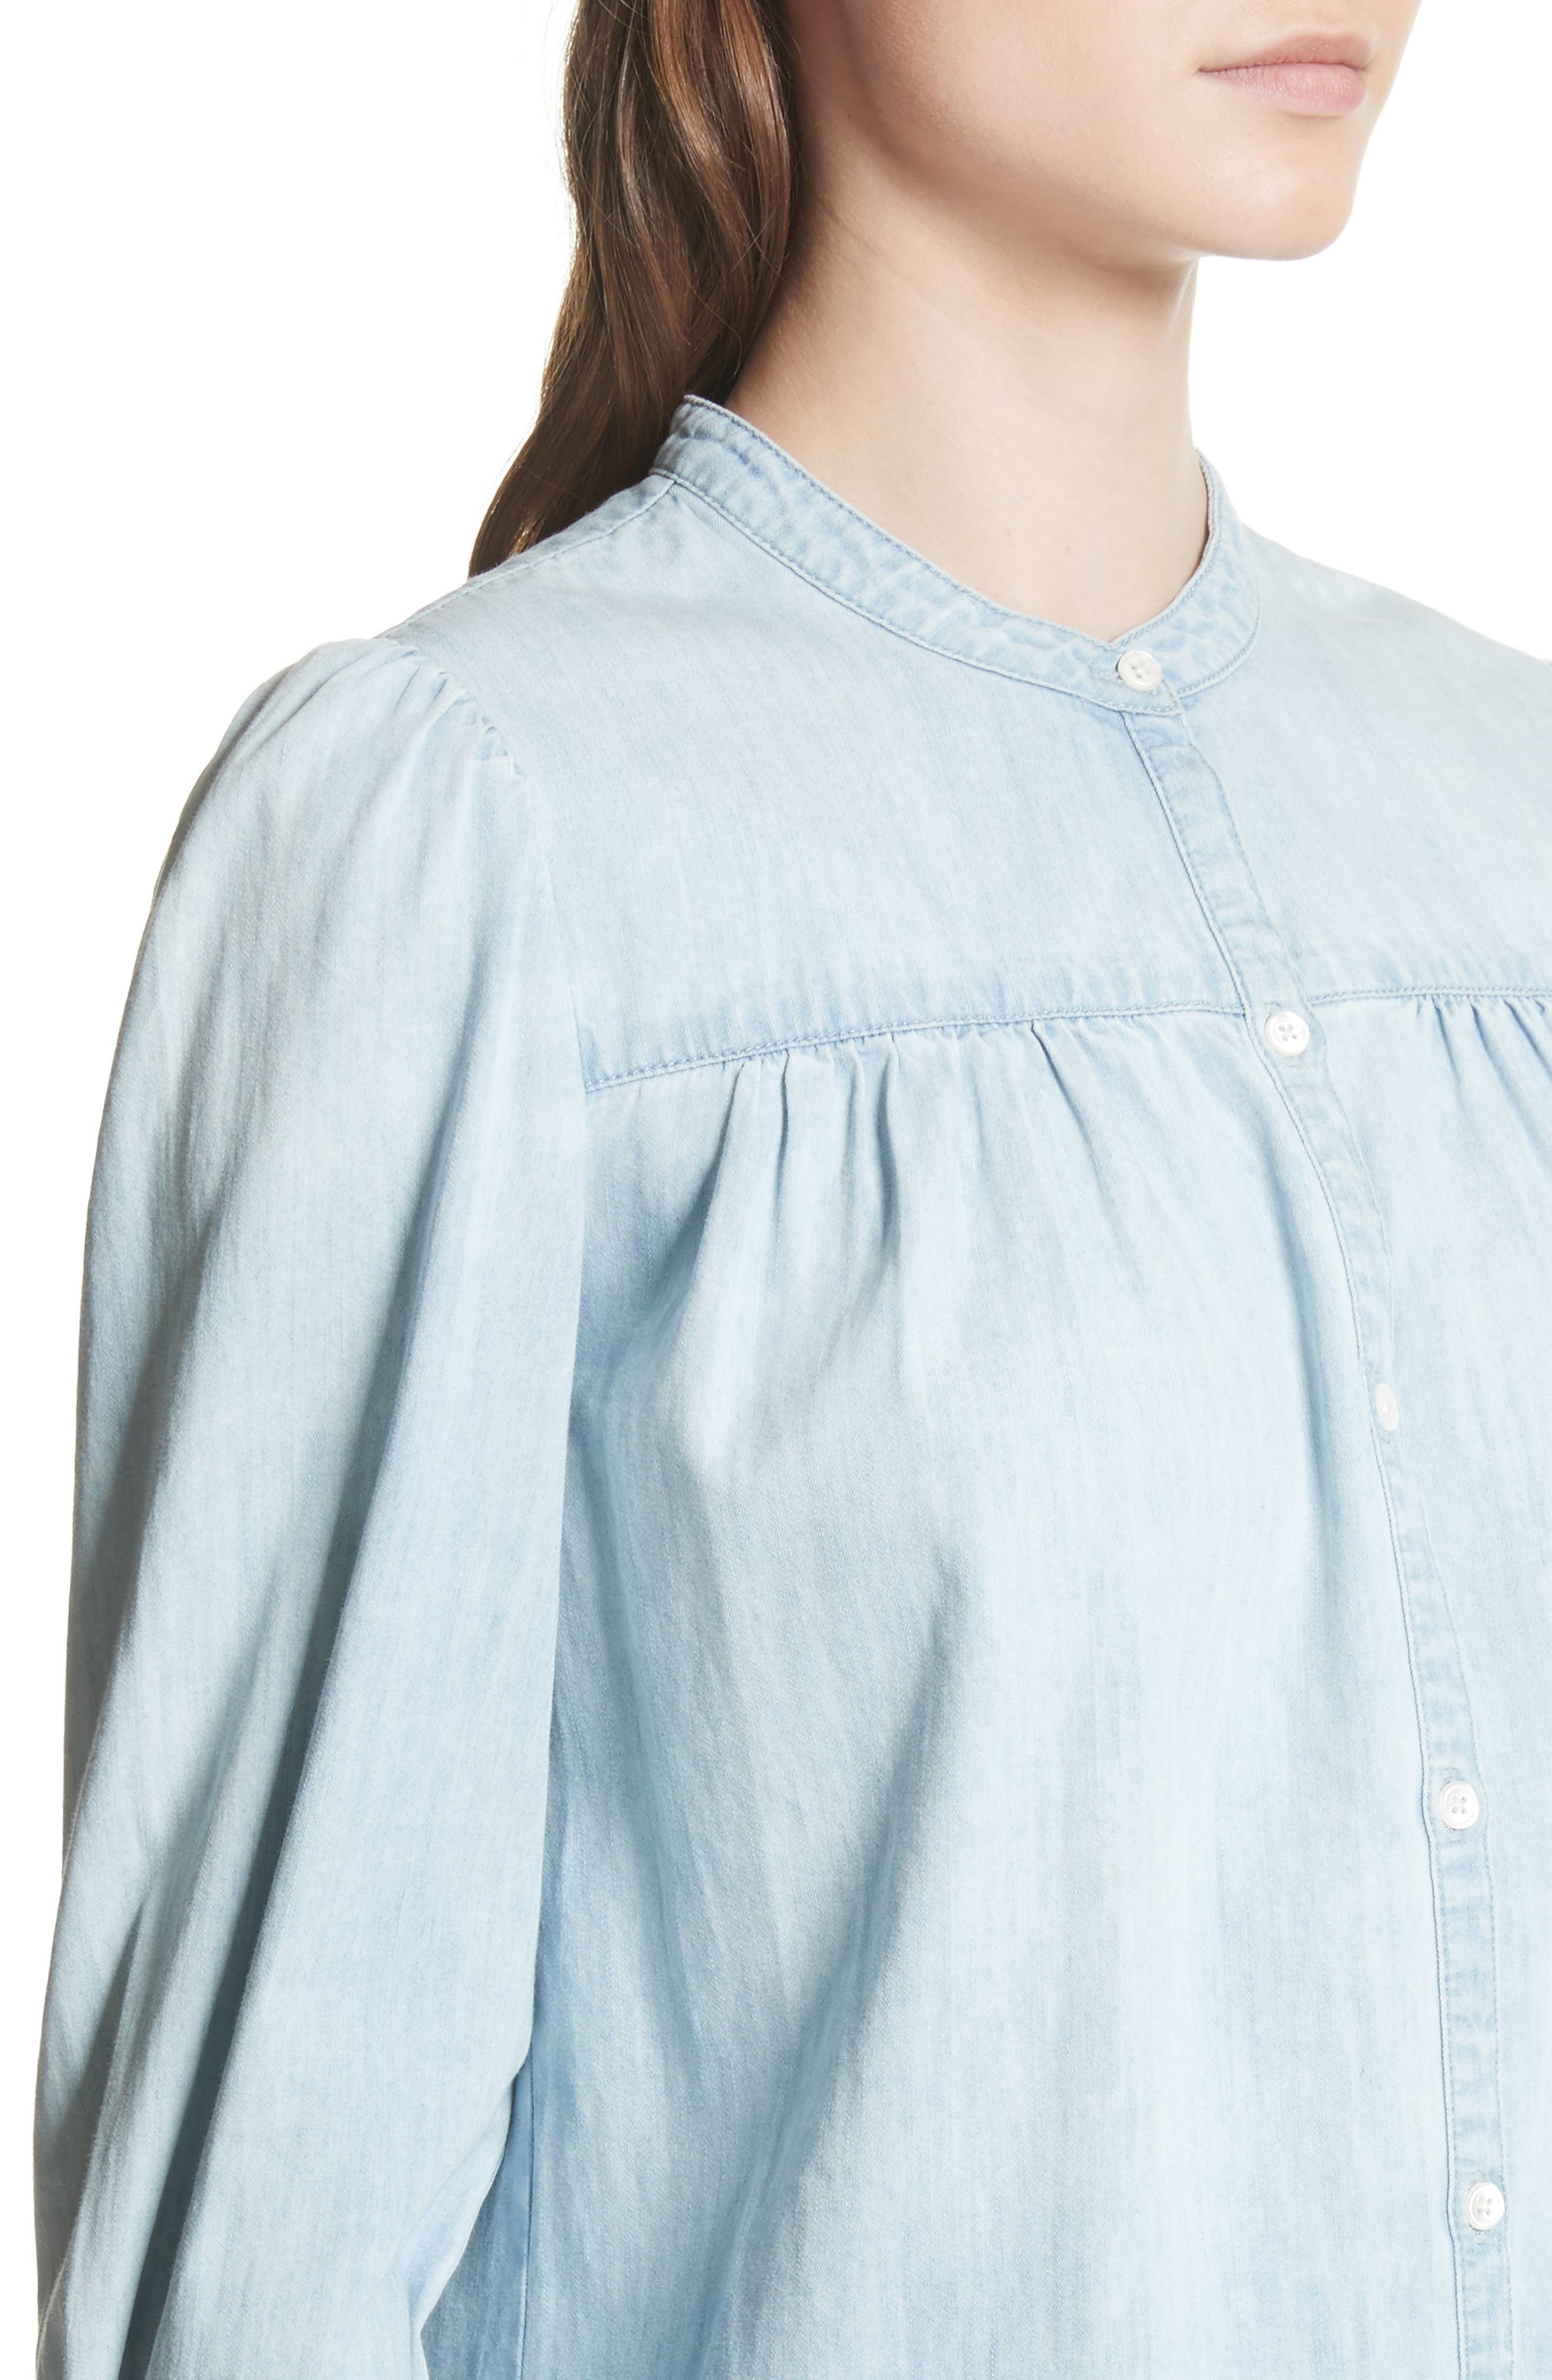 Aubrielle Silk Cotton Chambray Top,                             Alternate thumbnail 4, color,                             Western Fade